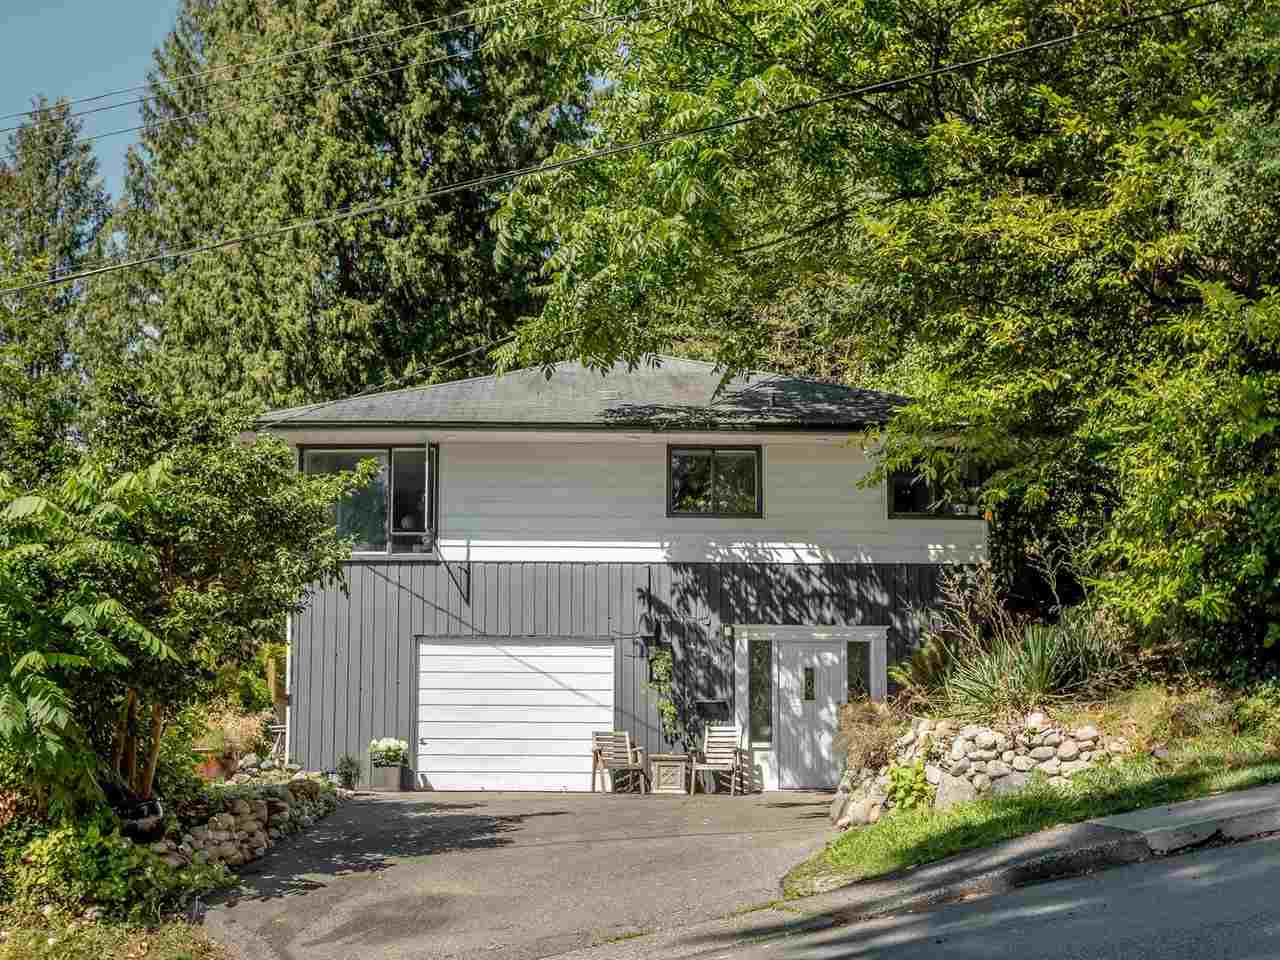 428 E 19TH STREET - Central Lonsdale House/Single Family for sale, 4 Bedrooms (R2486067) - #1